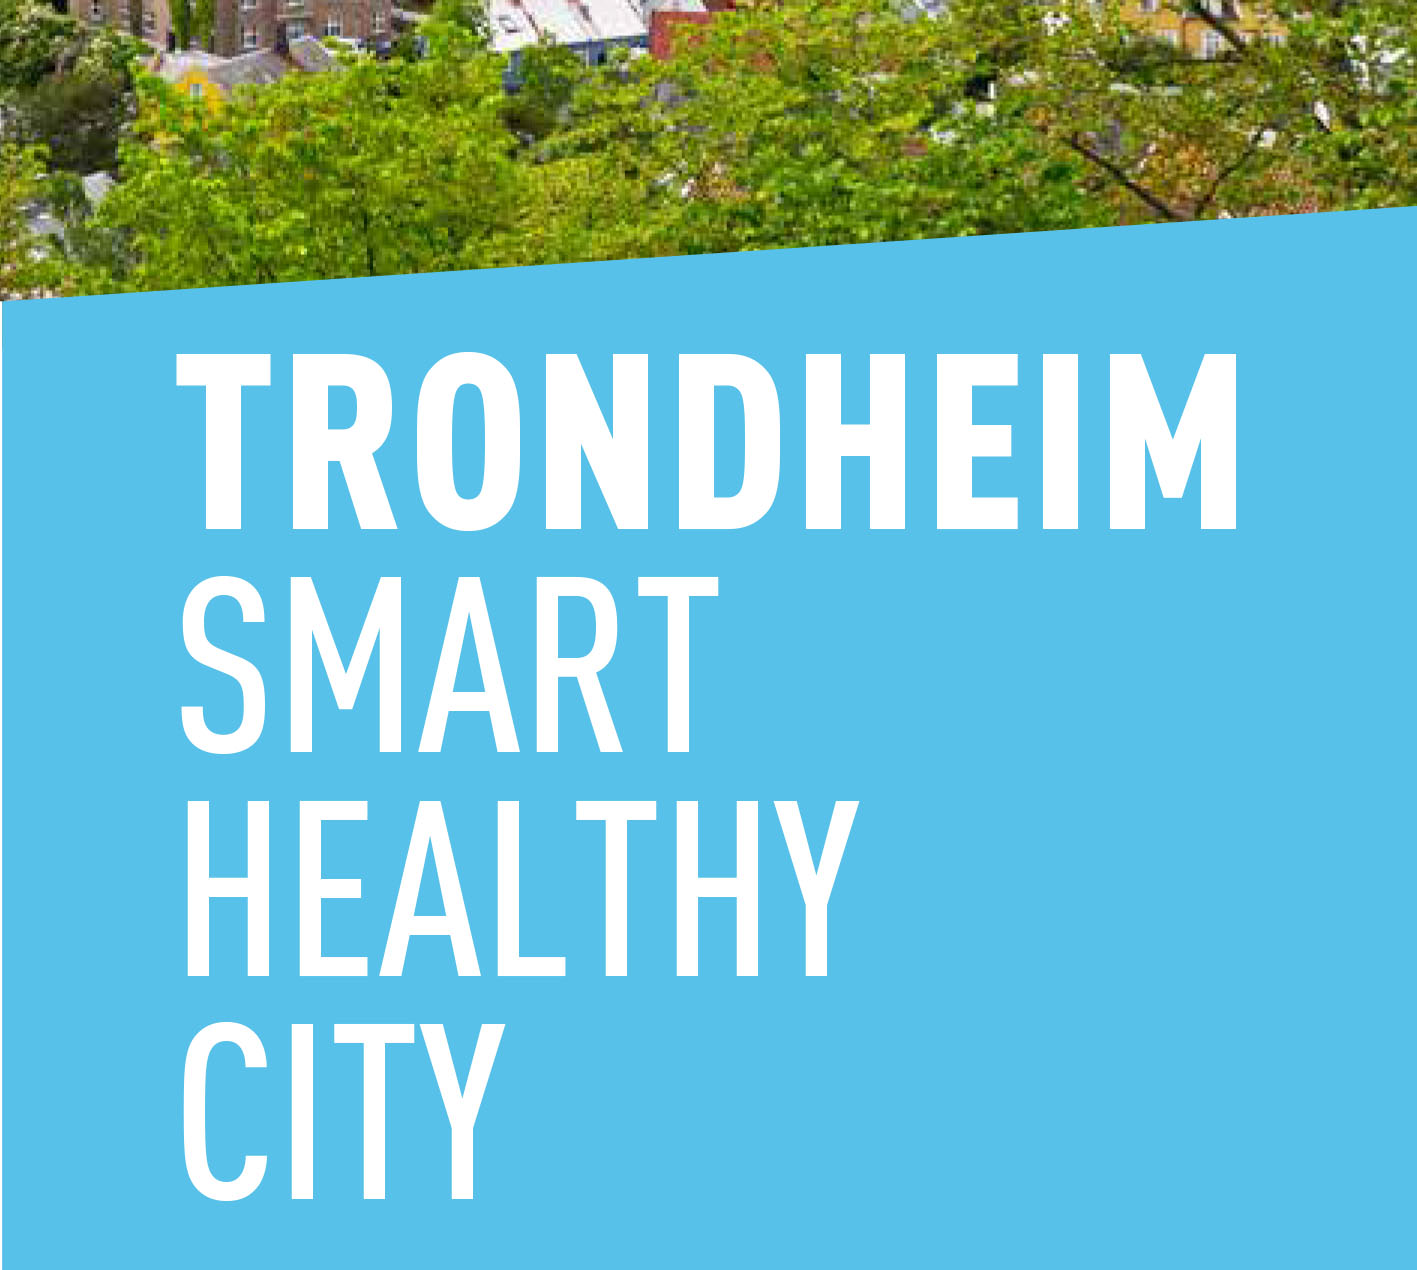 Trondheim-Smart-Healthy-City-2